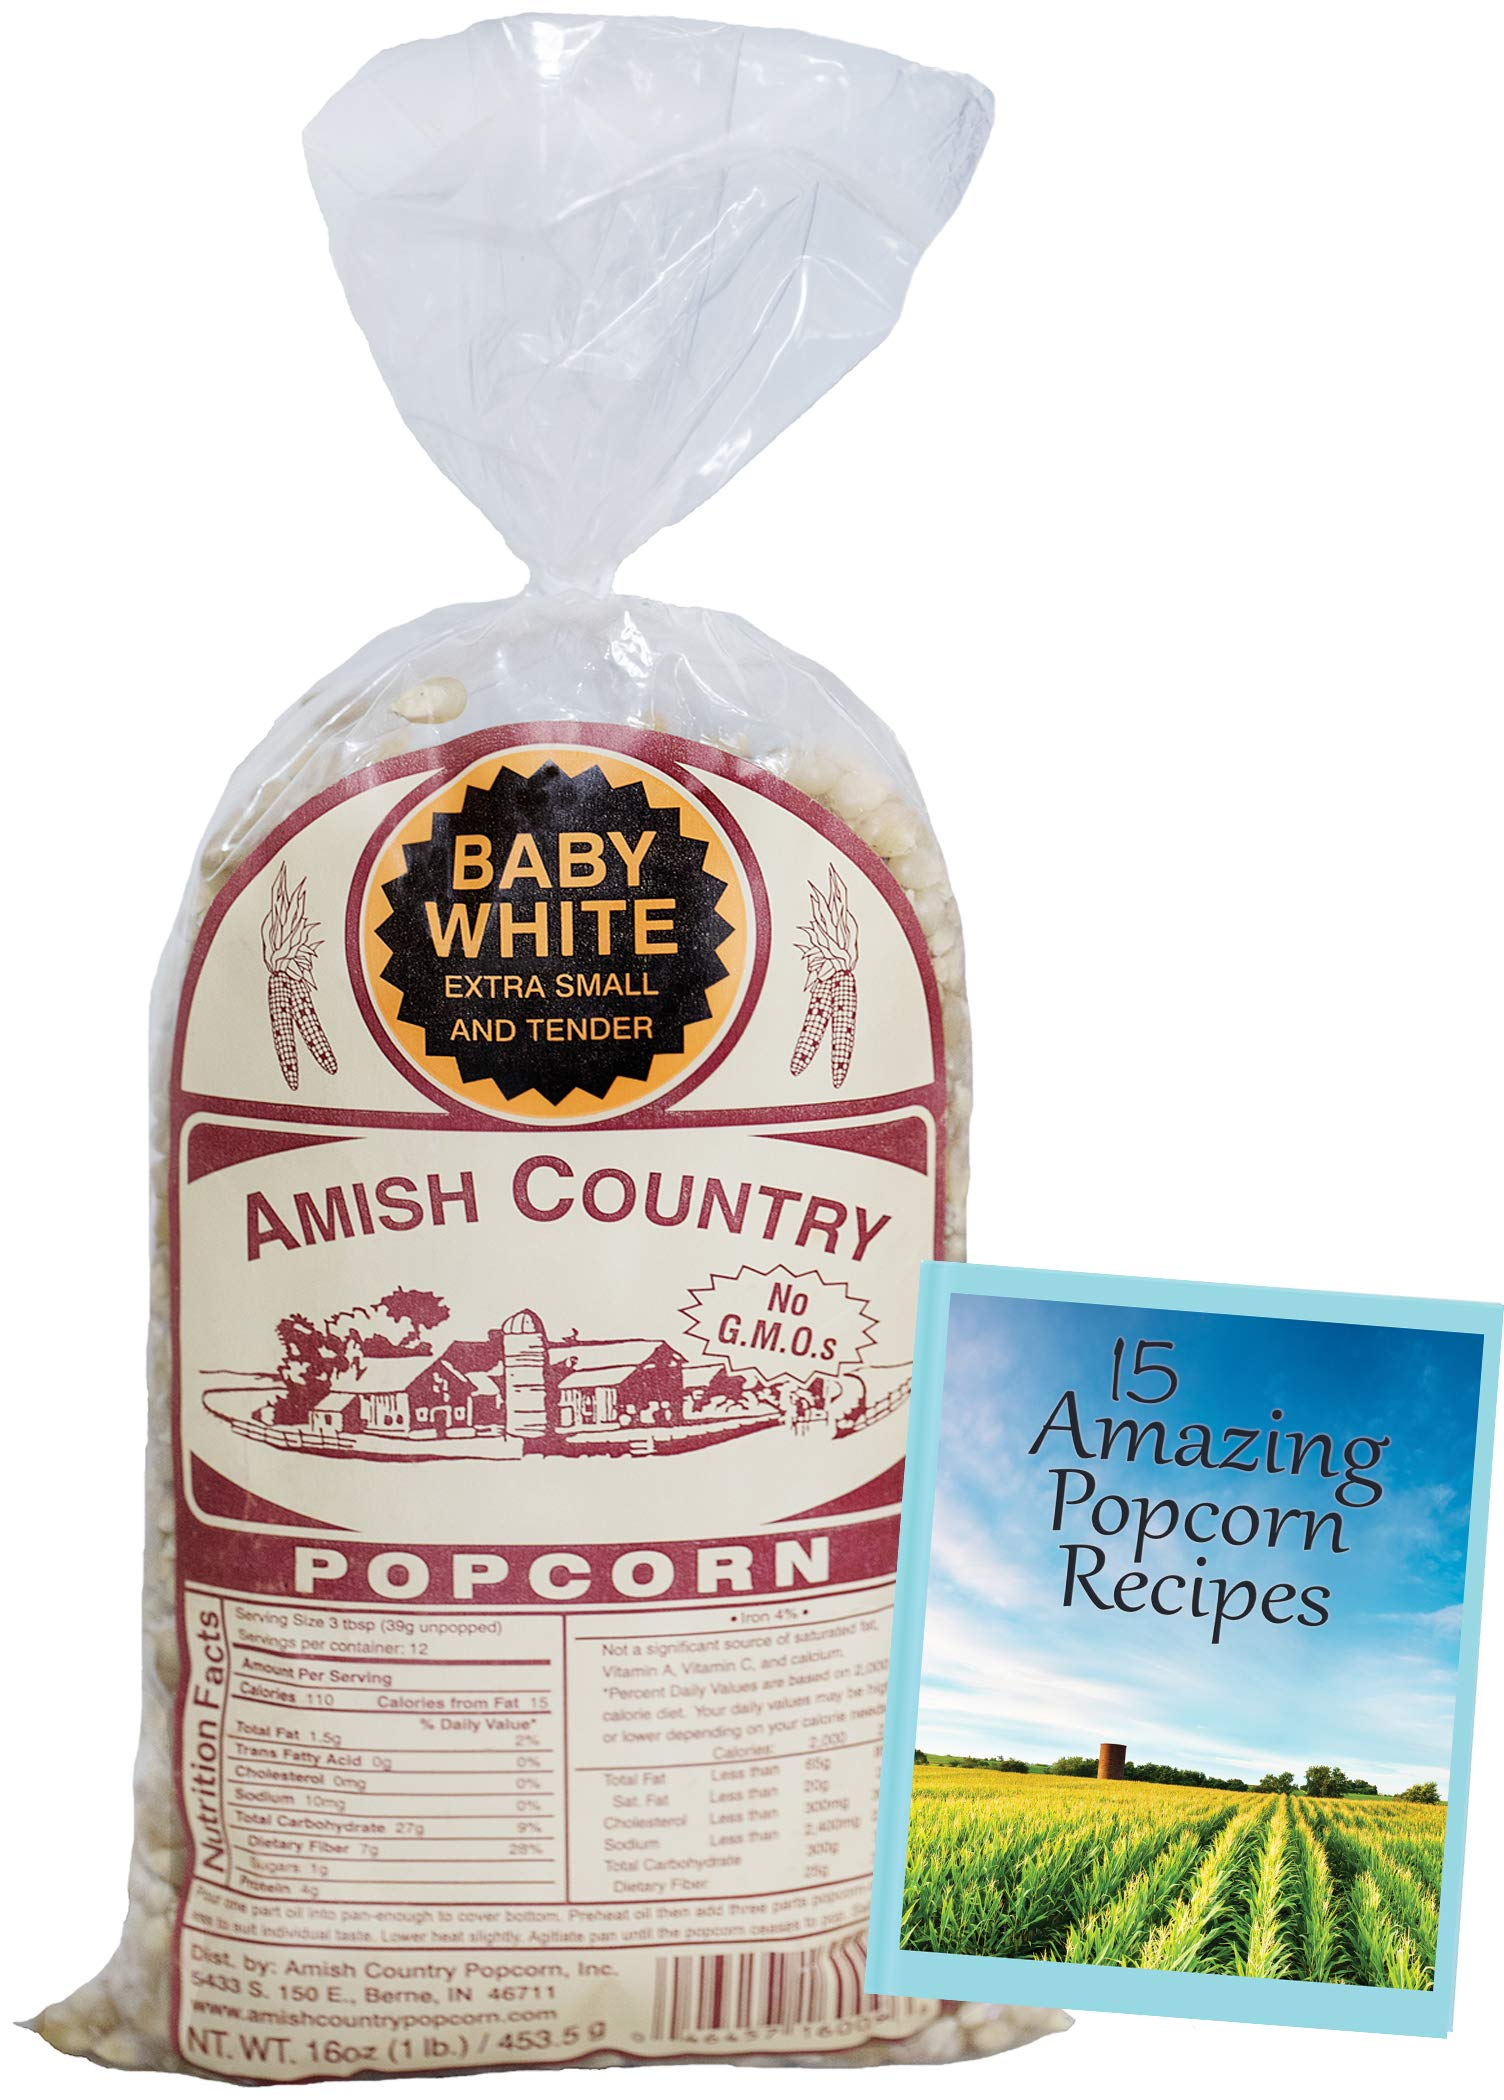 Amish Country Popcorn - Mushroom Popcorn (1 Pound Bag) Old Fashioned, Non GMO, and Gluten Free - with Recipe Guide by Amish Country Popcorn (Image #2)